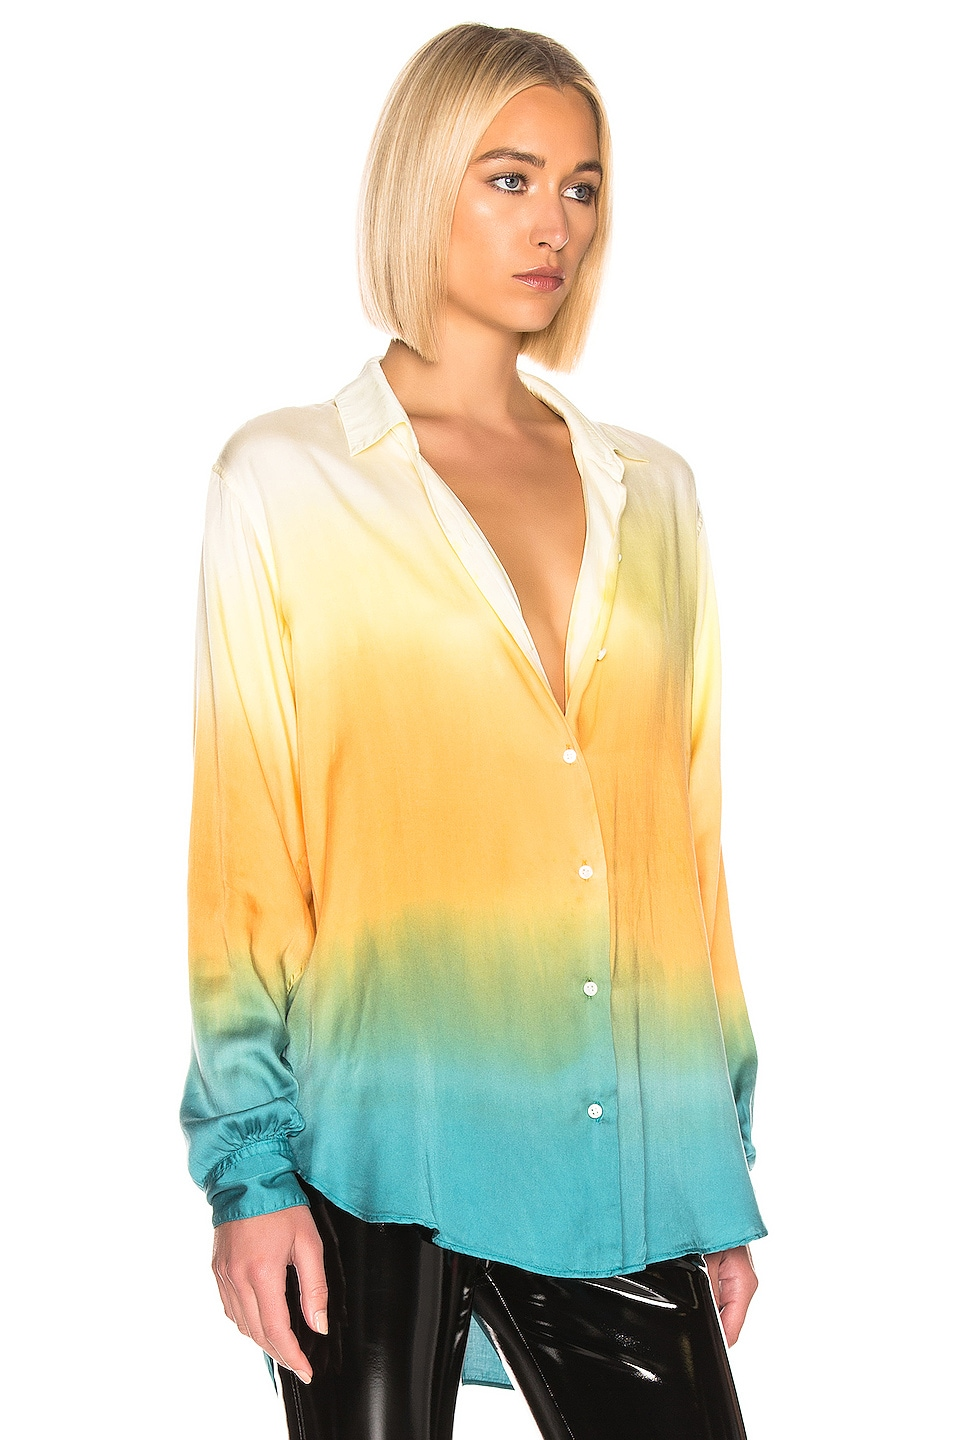 Image 2 of JOHN ELLIOTT for FWRD Jude Blouse in Gradient